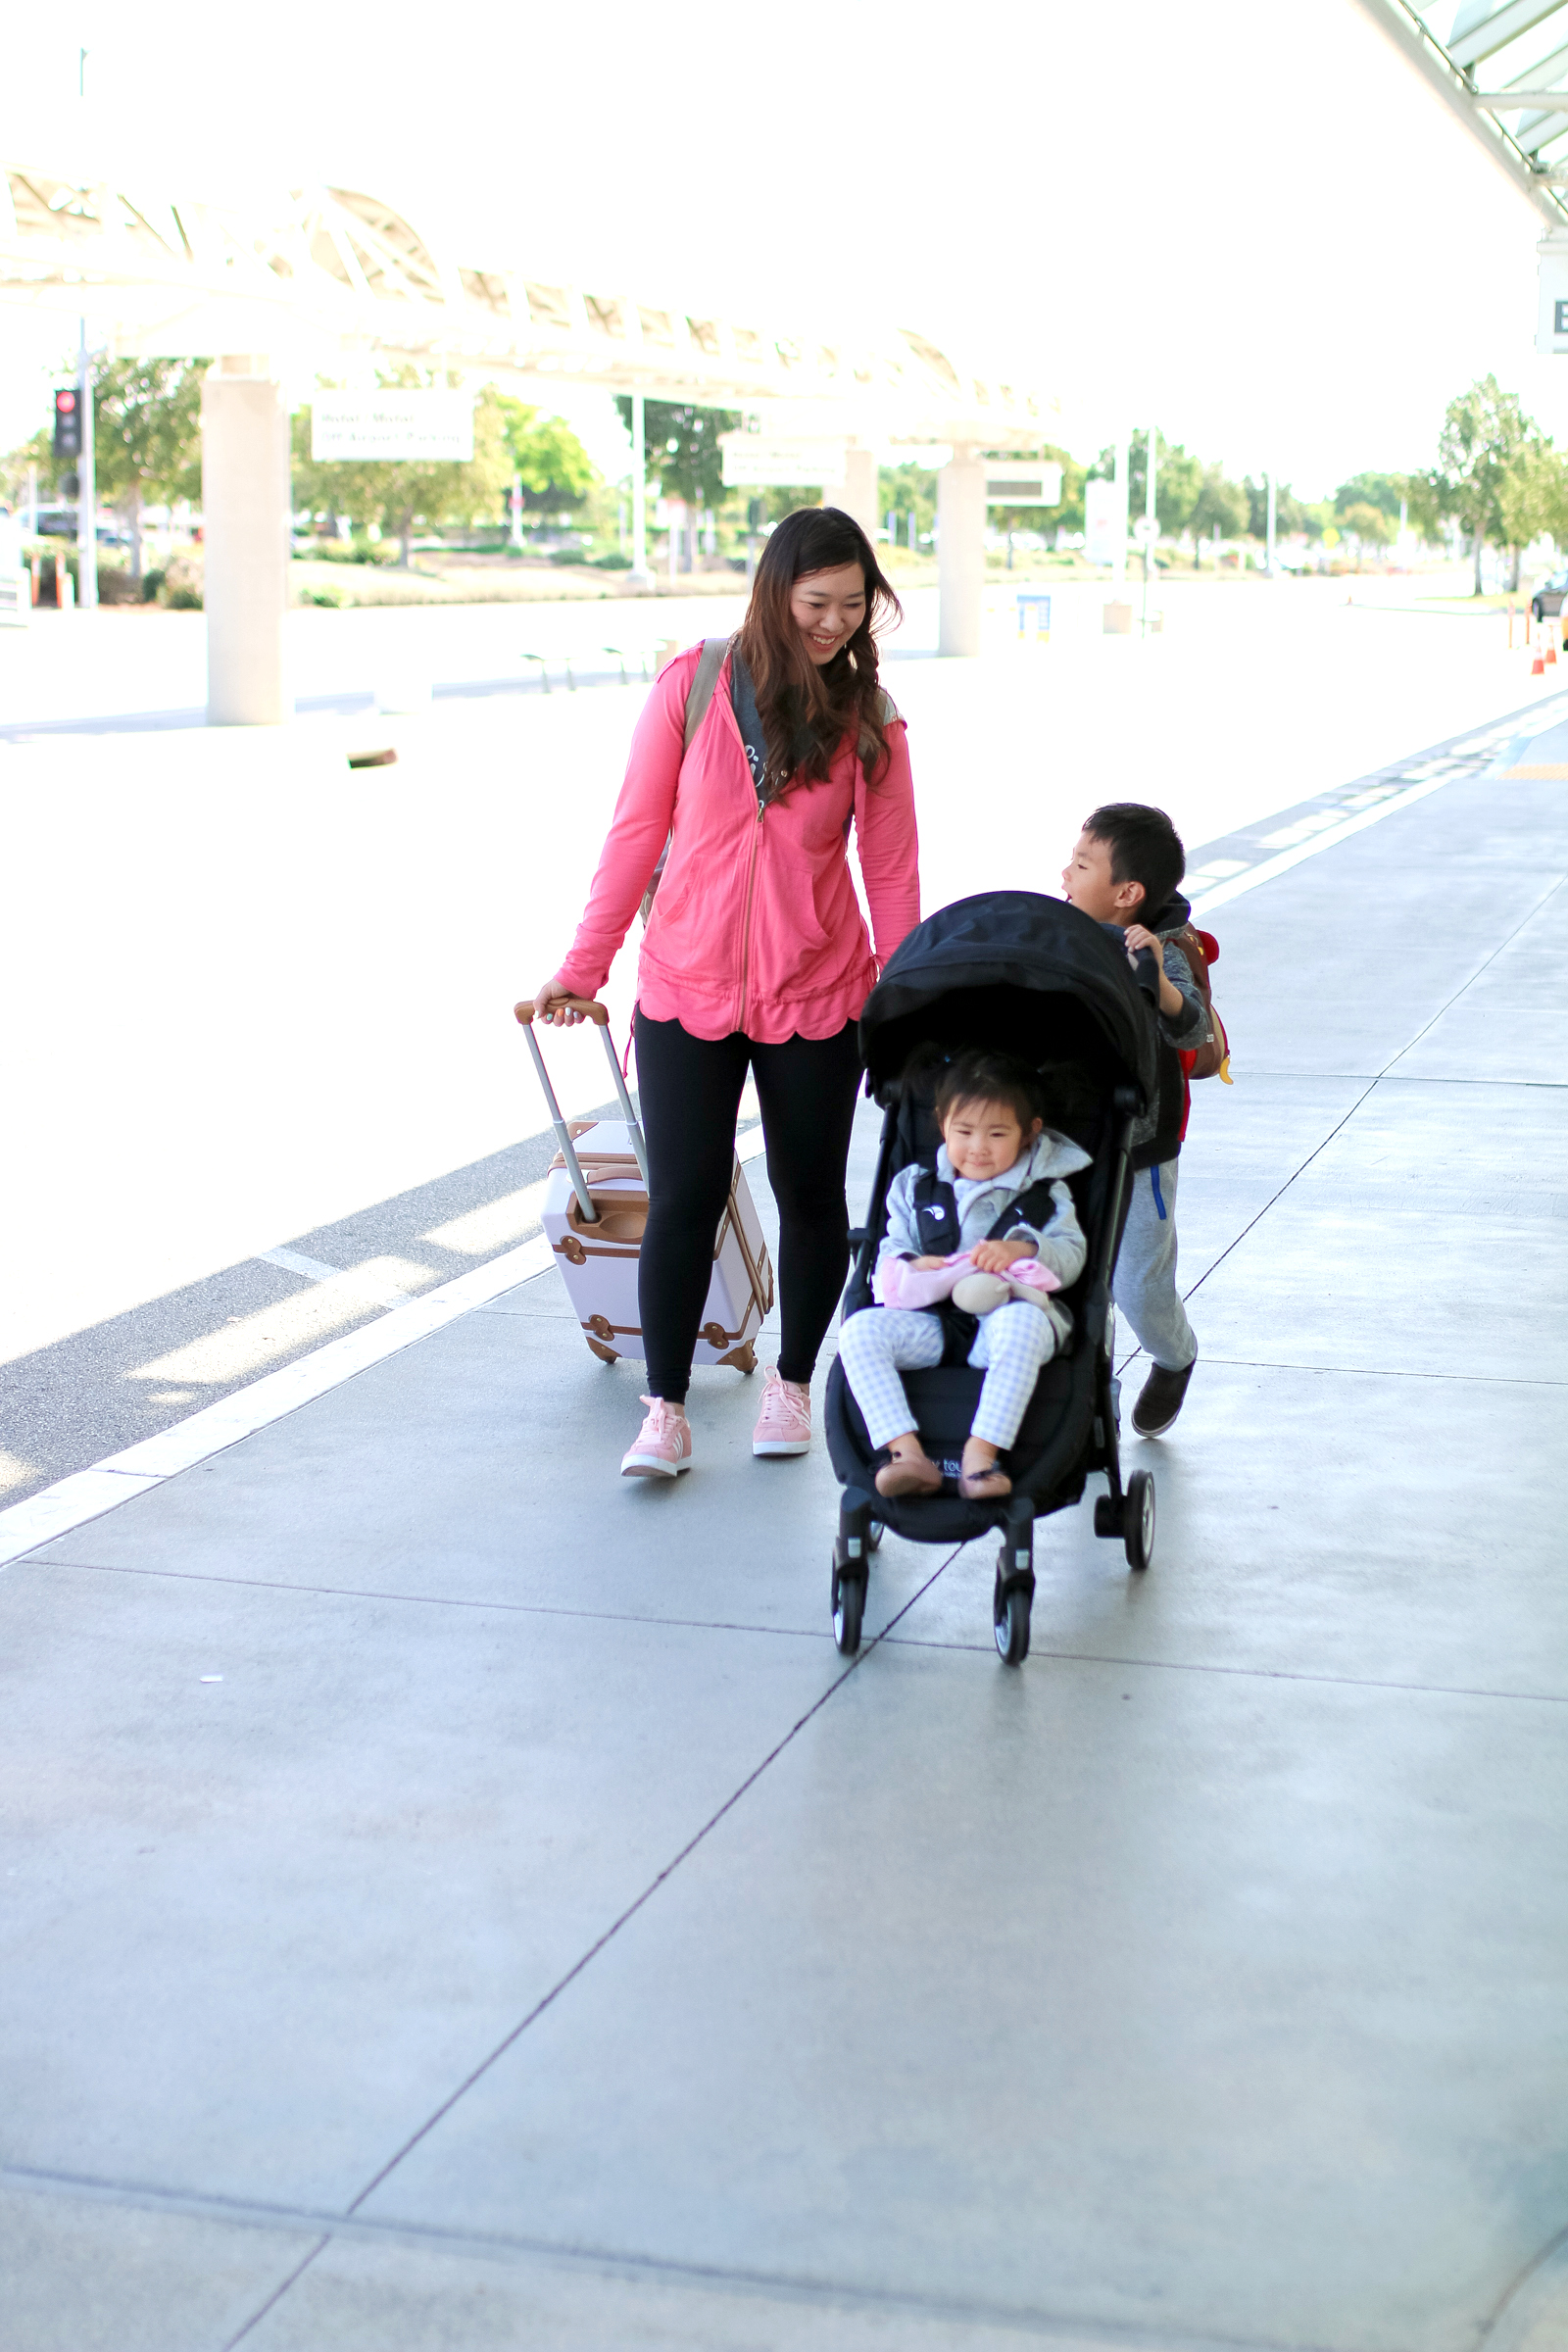 5 Travel Hacks For Traveling With Little Ones with Baby Jogger by lifestyle blogger Sandy A La Mode